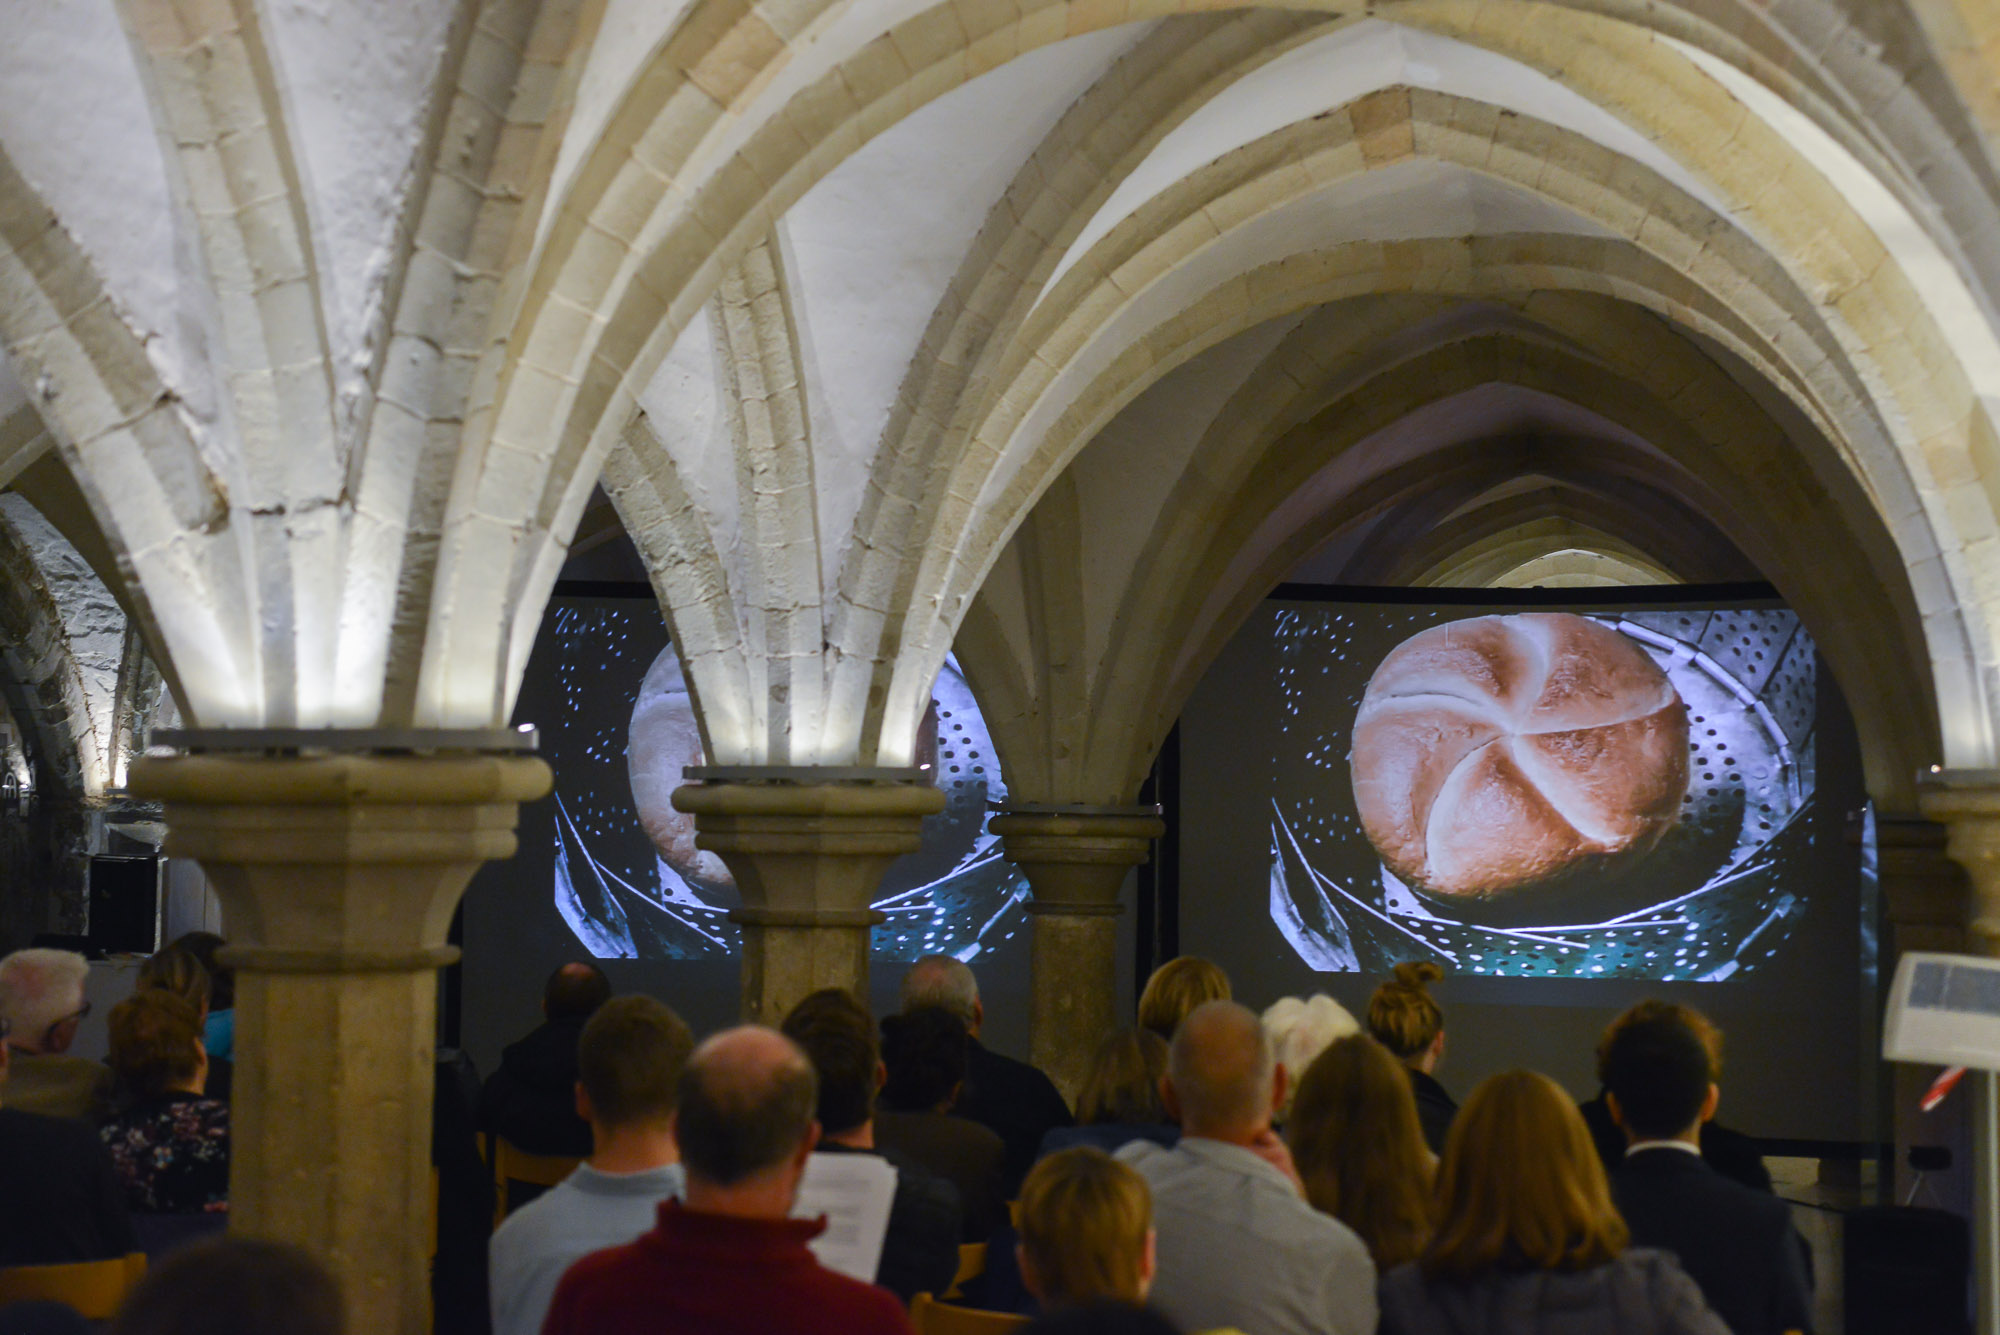 Dimensions of Dialogue, 1934, Jan Svankmajer. Rochester Launch, photos by Keith Greenfield. ©51zero